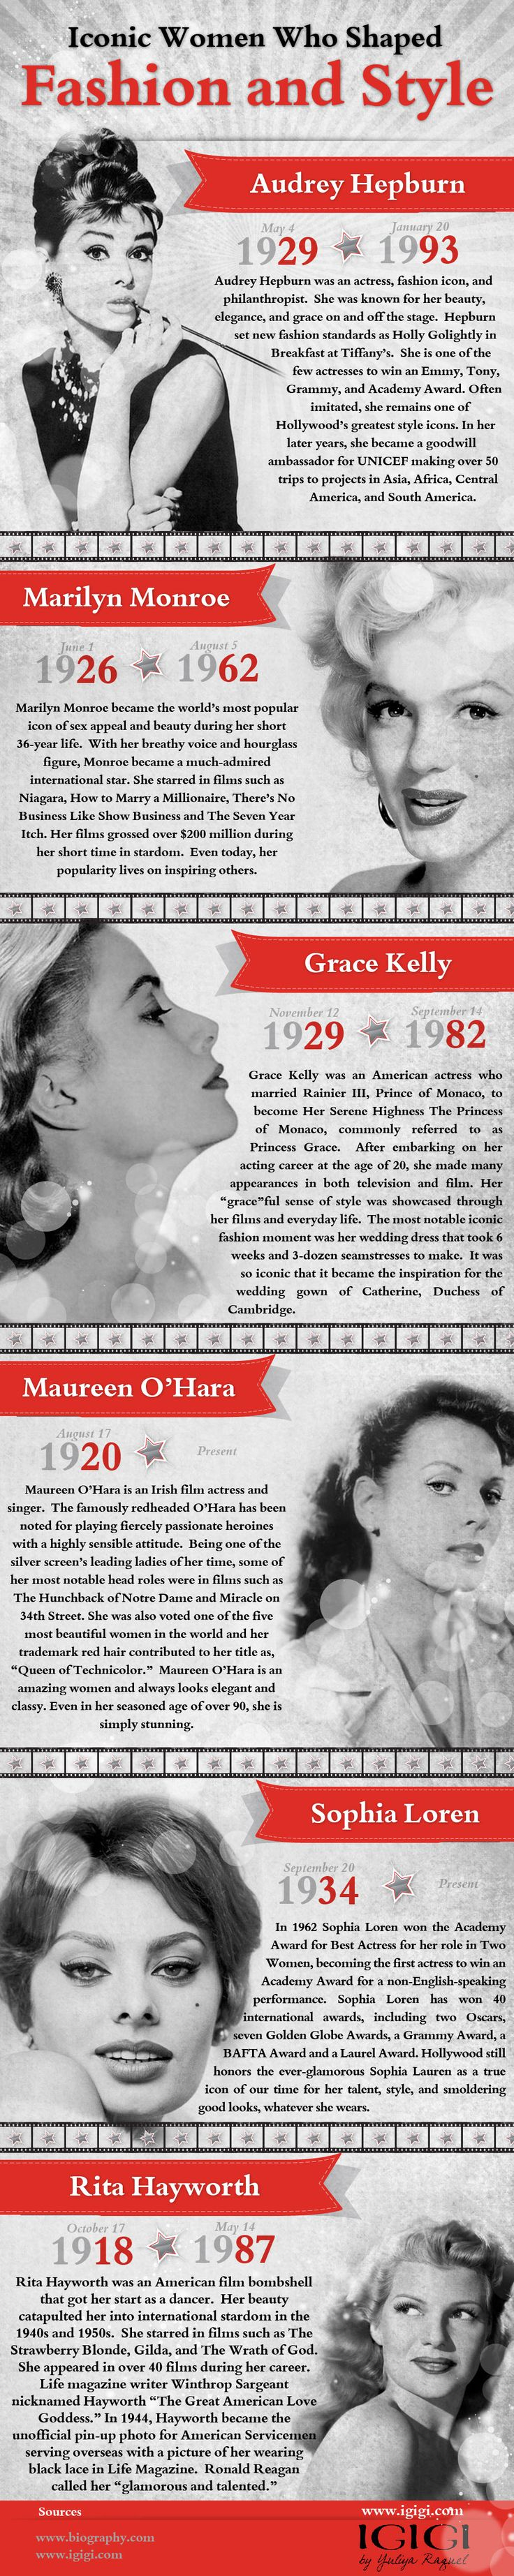 Learn about the Golden Age of Hollywoods most iconic women who helped shaped the face of fashion & style